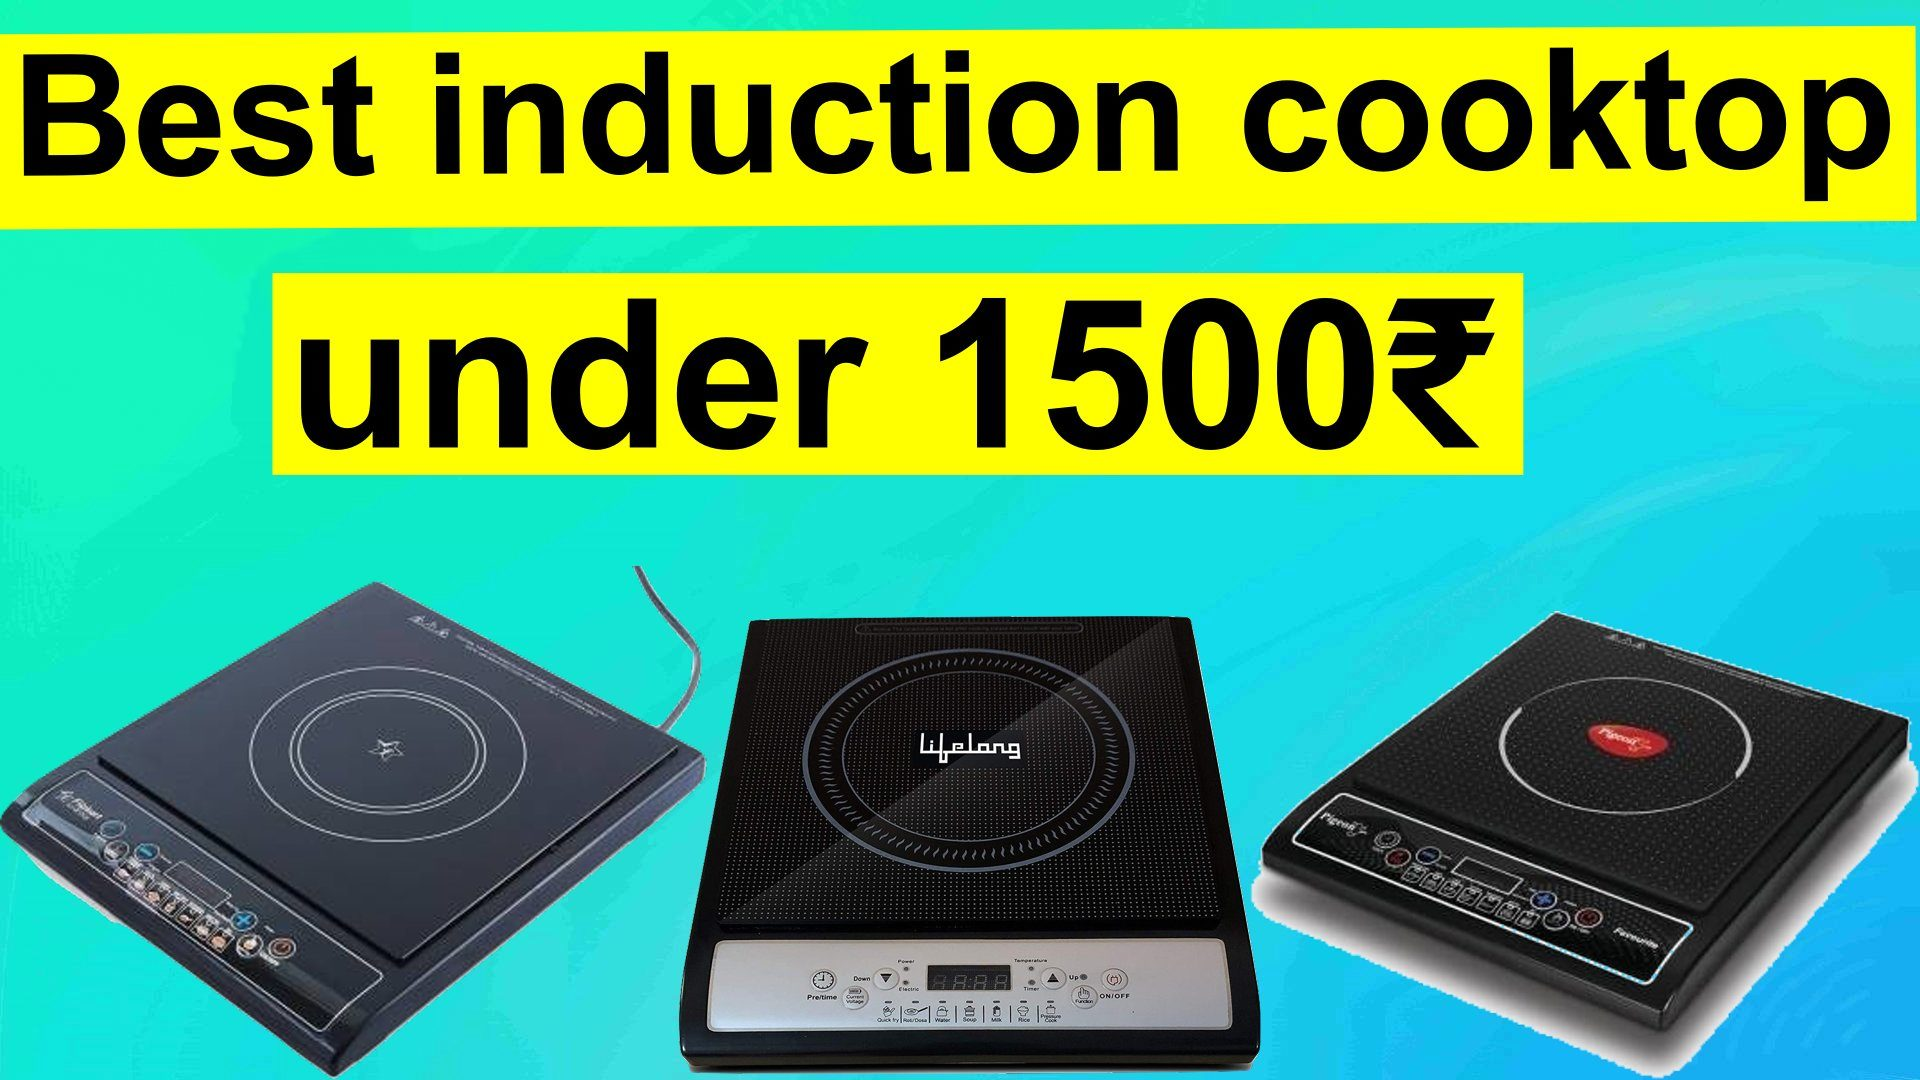 Best induction cooktop under Rs 1500 in India